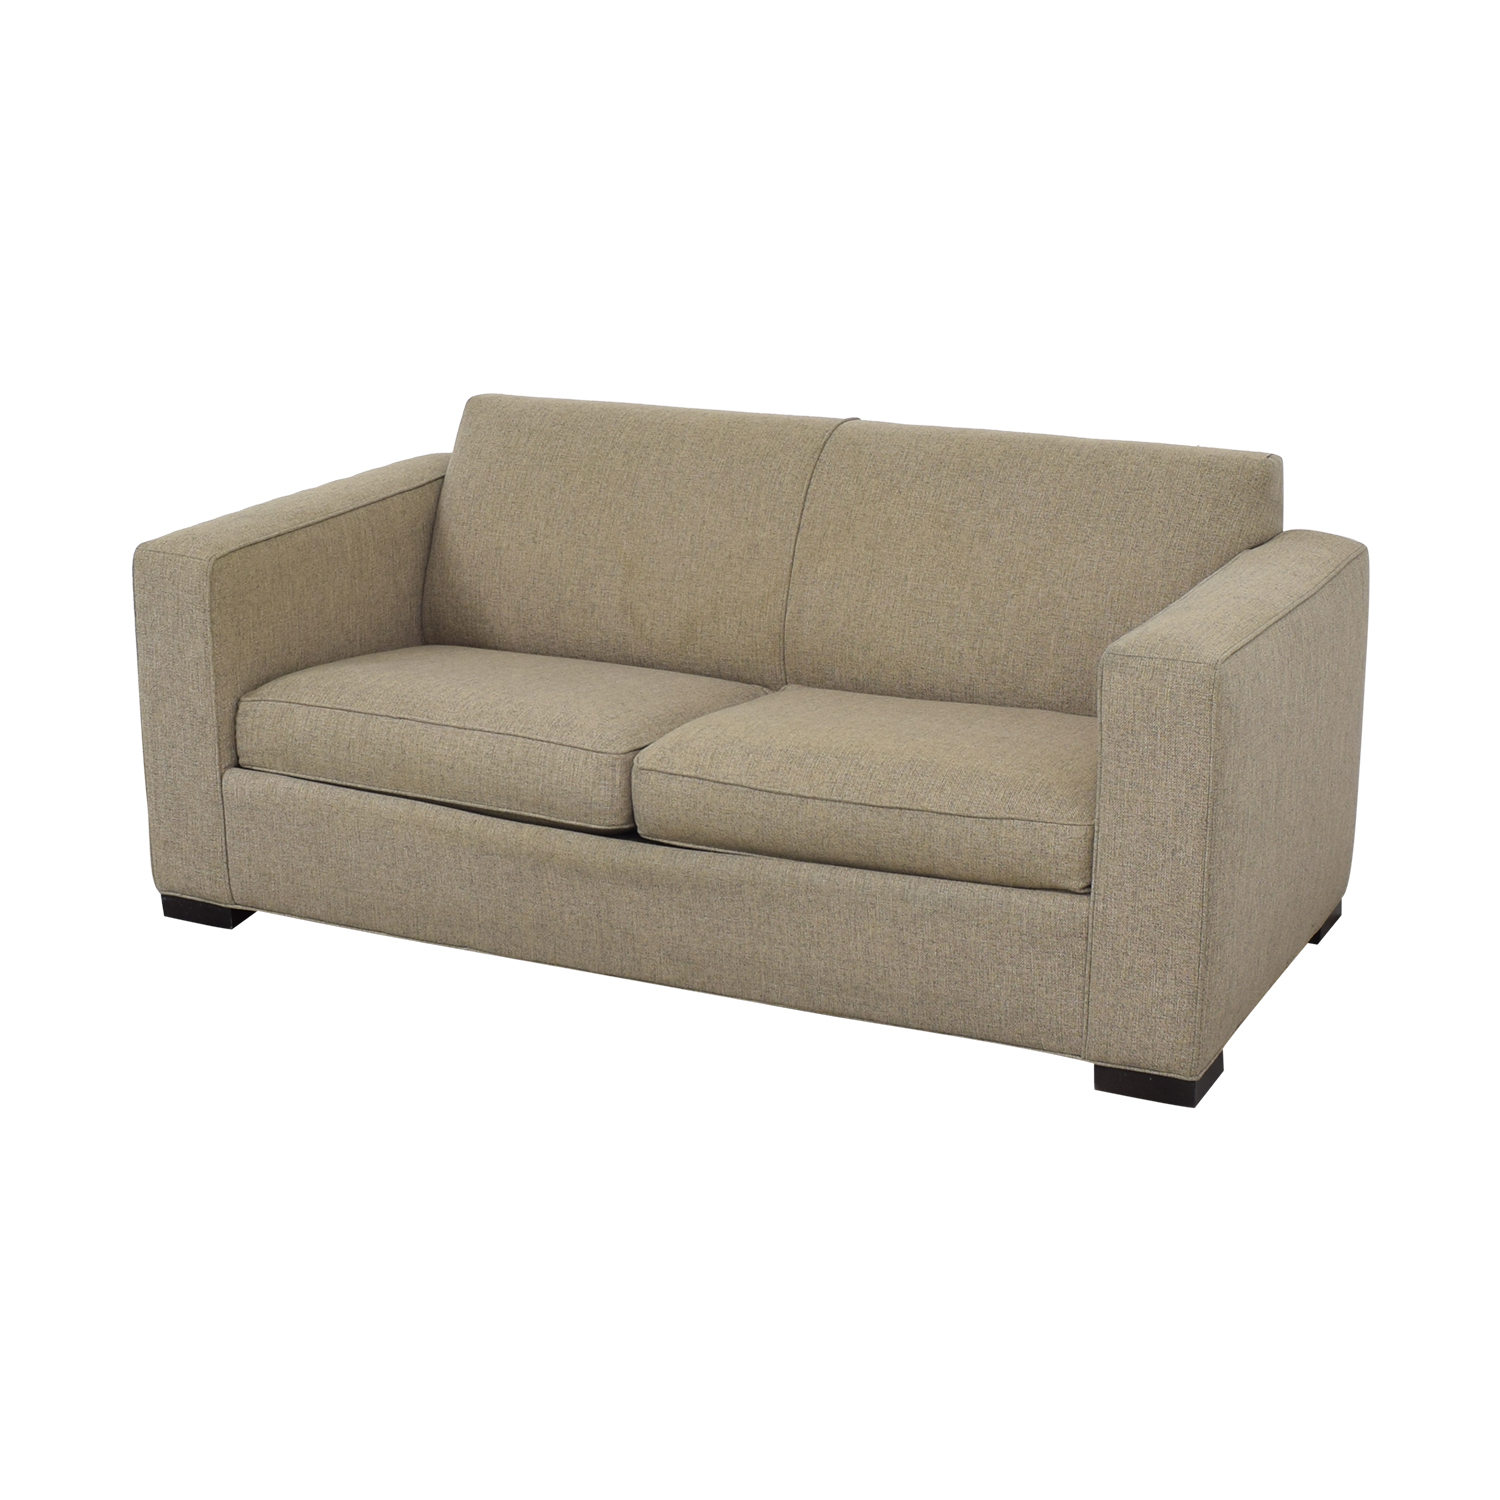 Room & Board Room & Board Levin Full Sleeper Sofa price